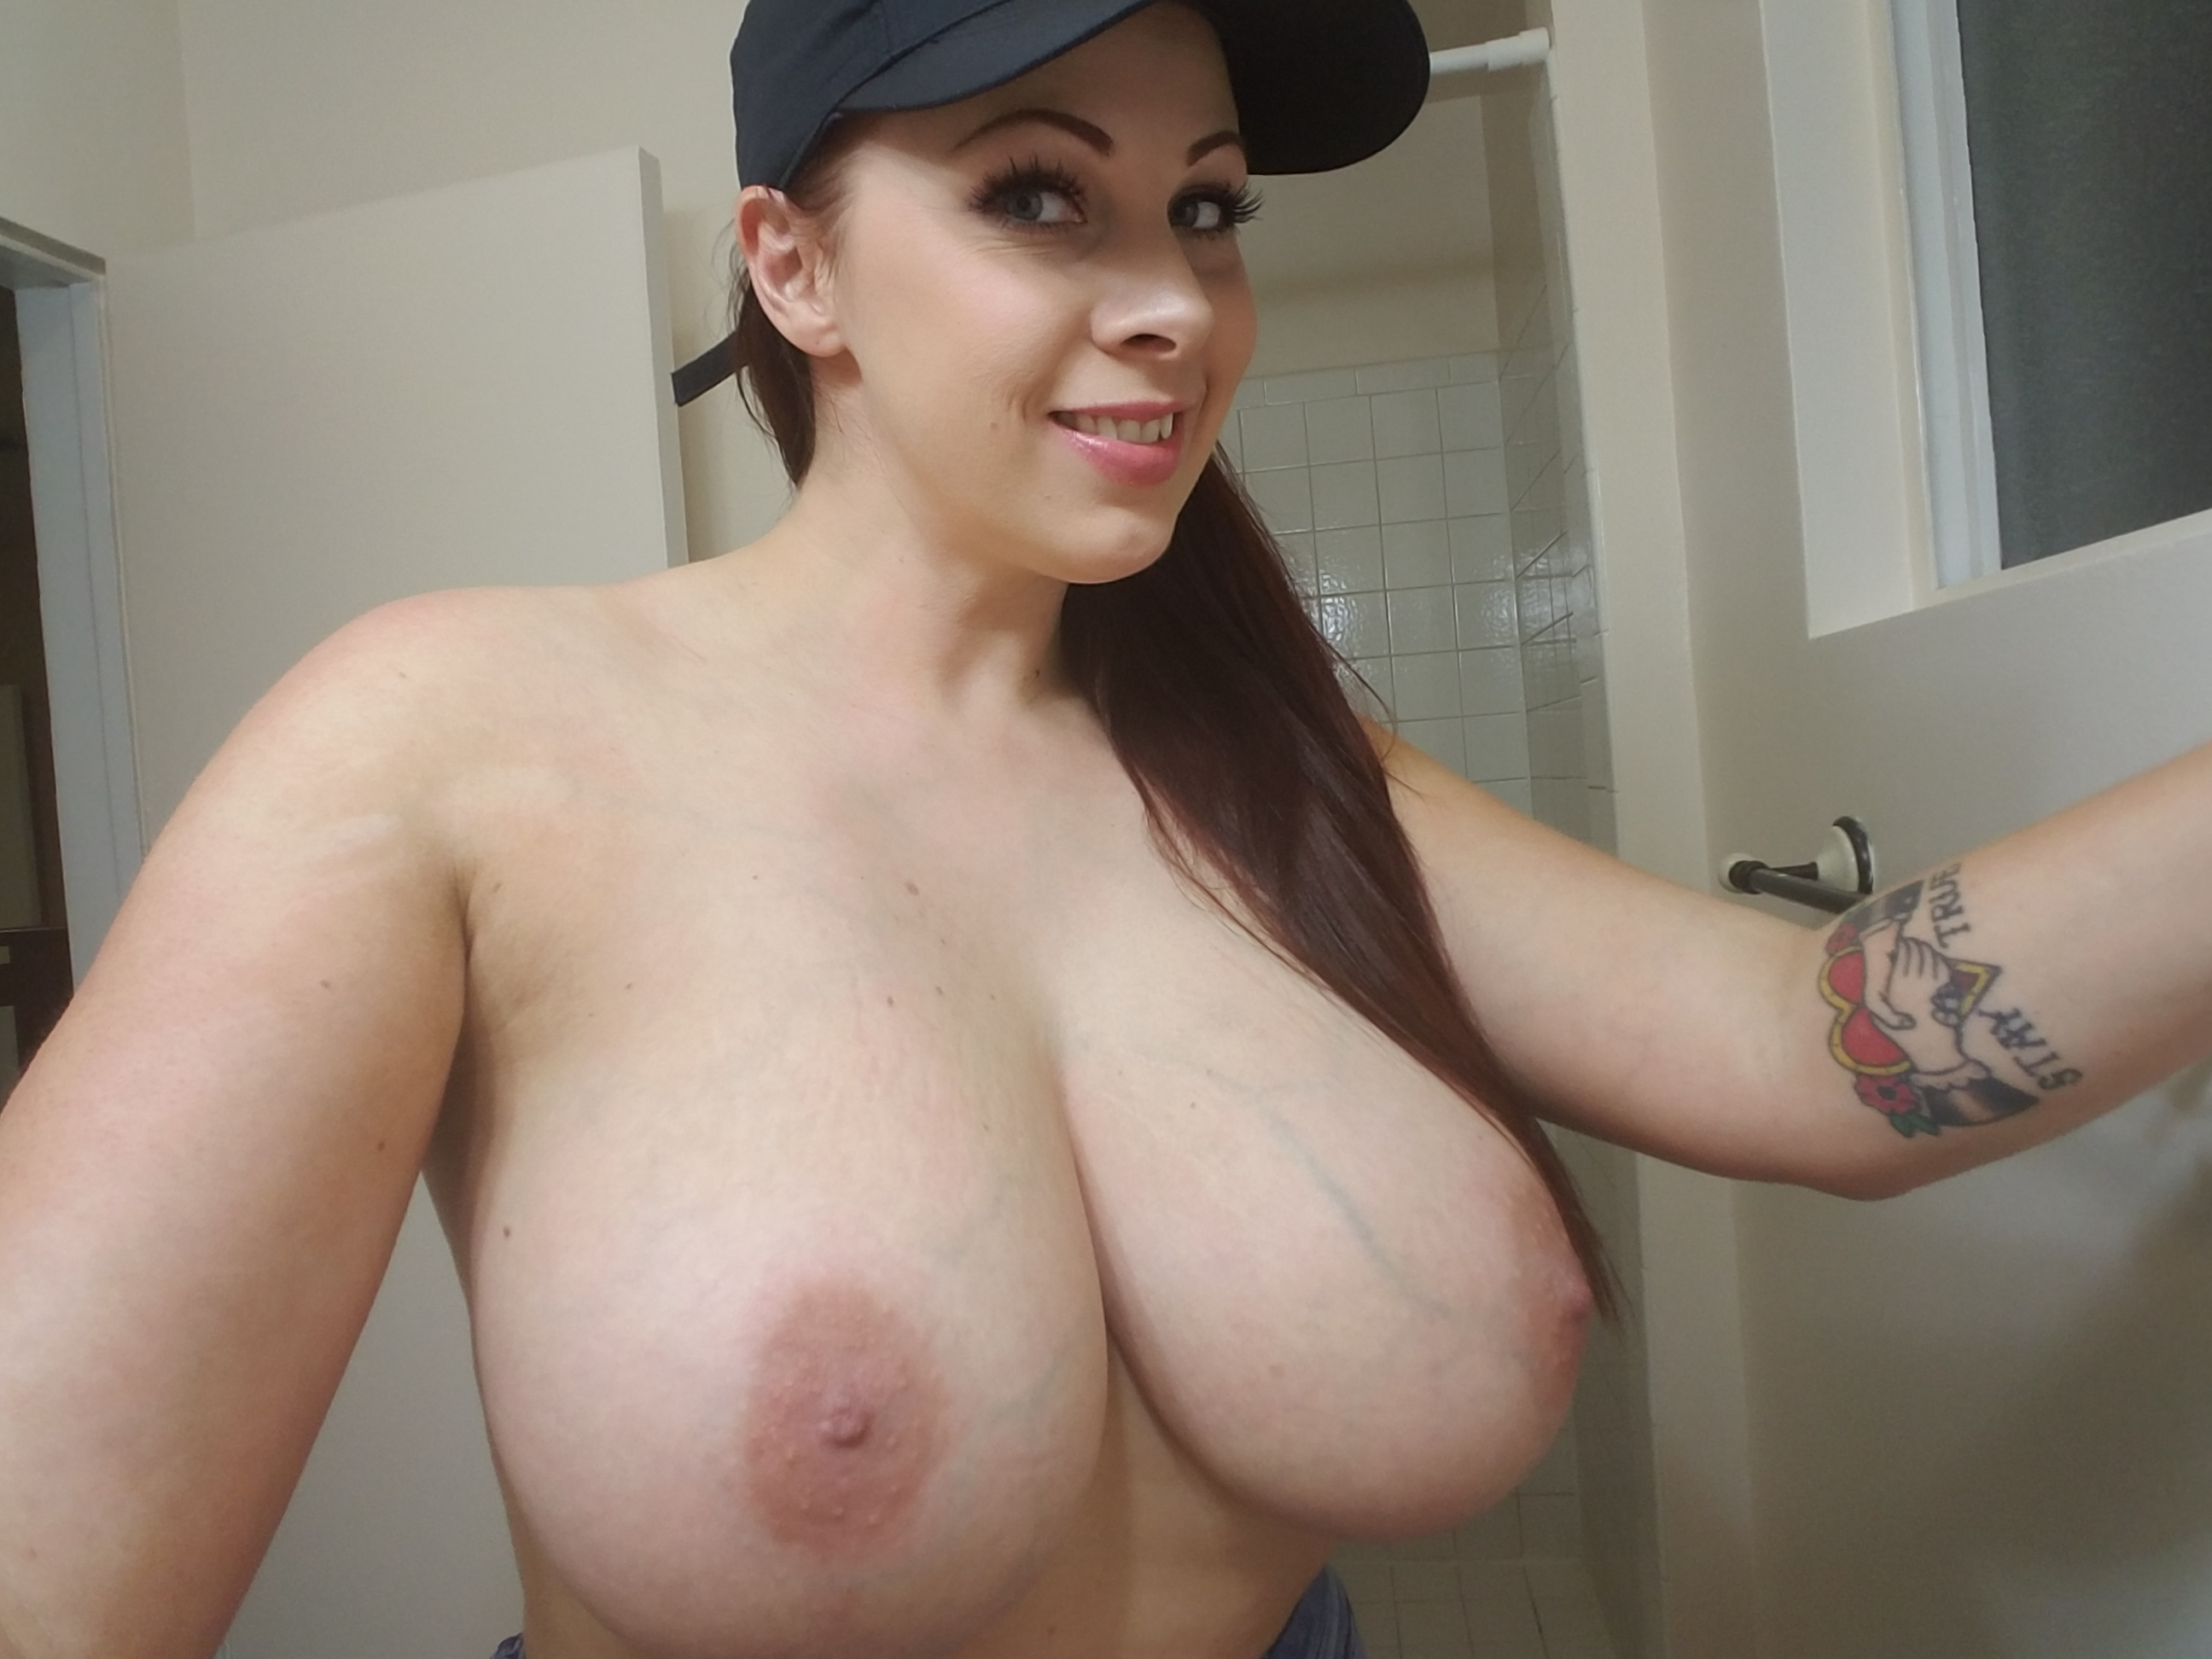 gianna michaels webcam